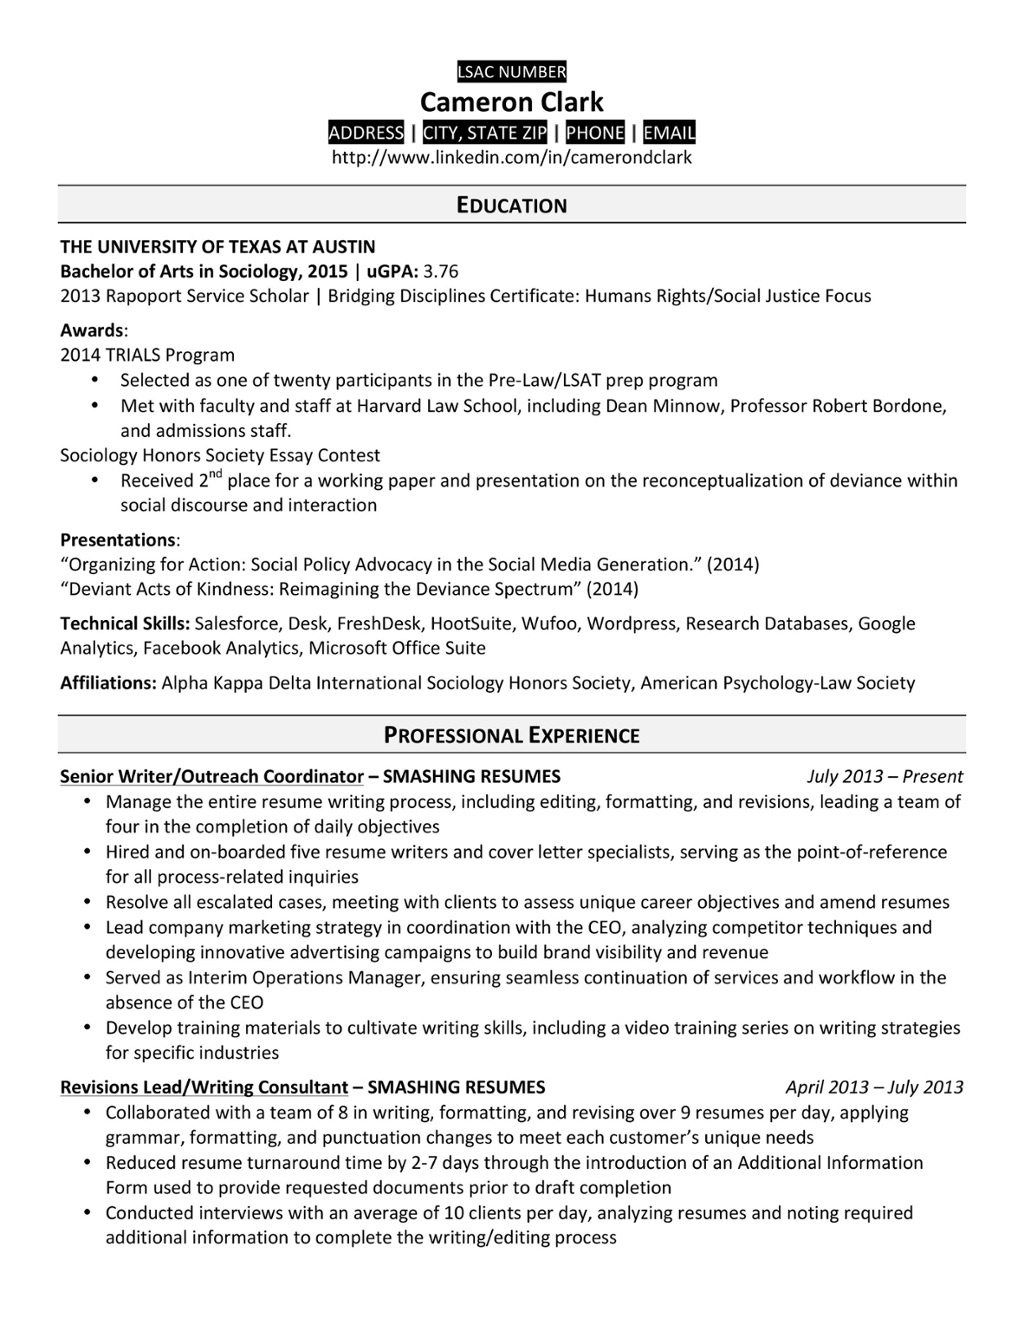 law school resume templates prepping your for of university at template word free nanny Resume Law School Resume Template Word